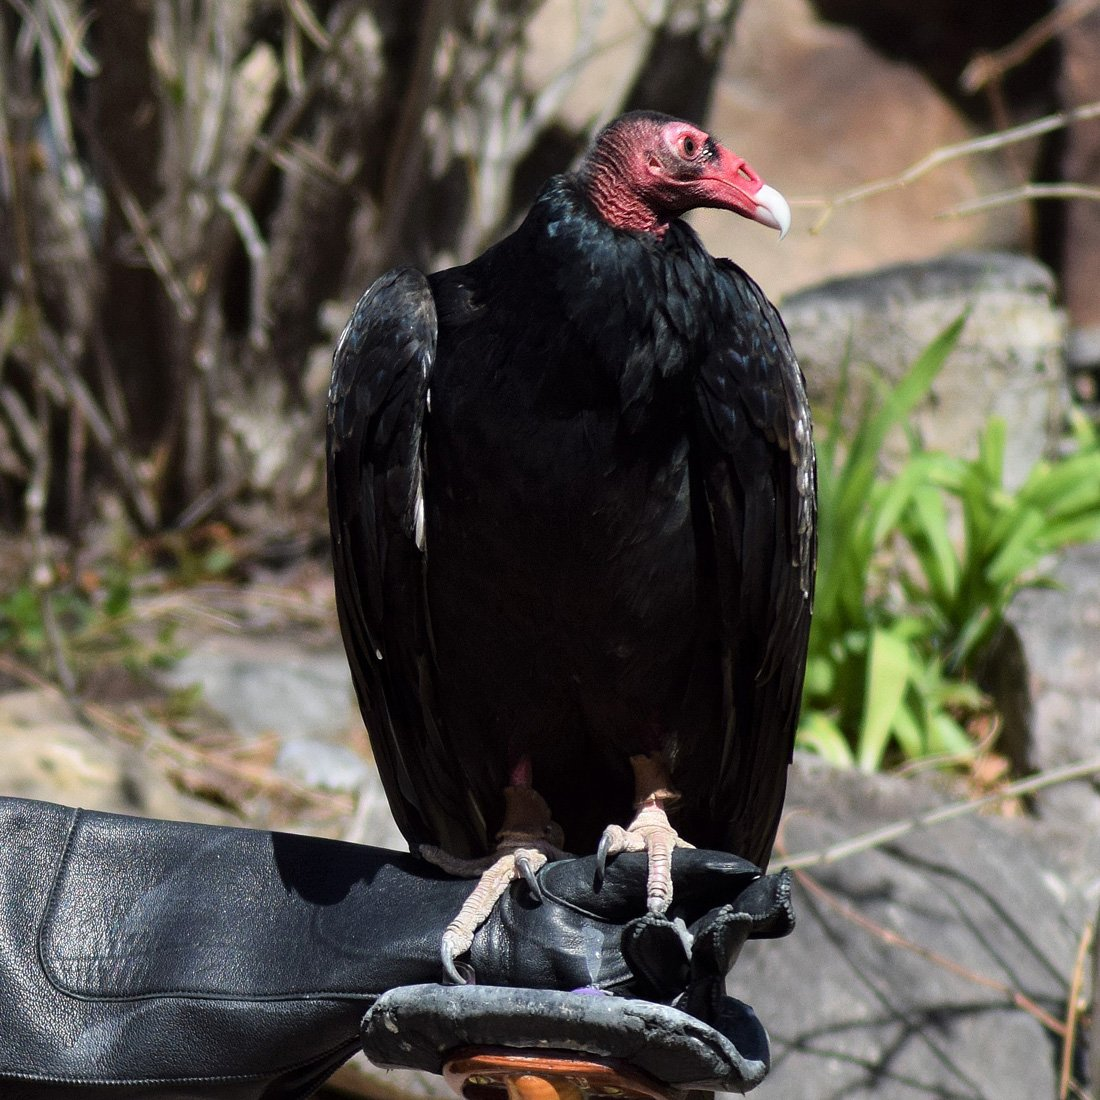 Photo of Suli, the Draper Museum Raptor Experiences Turkey Vulture, as she perches on a glove.